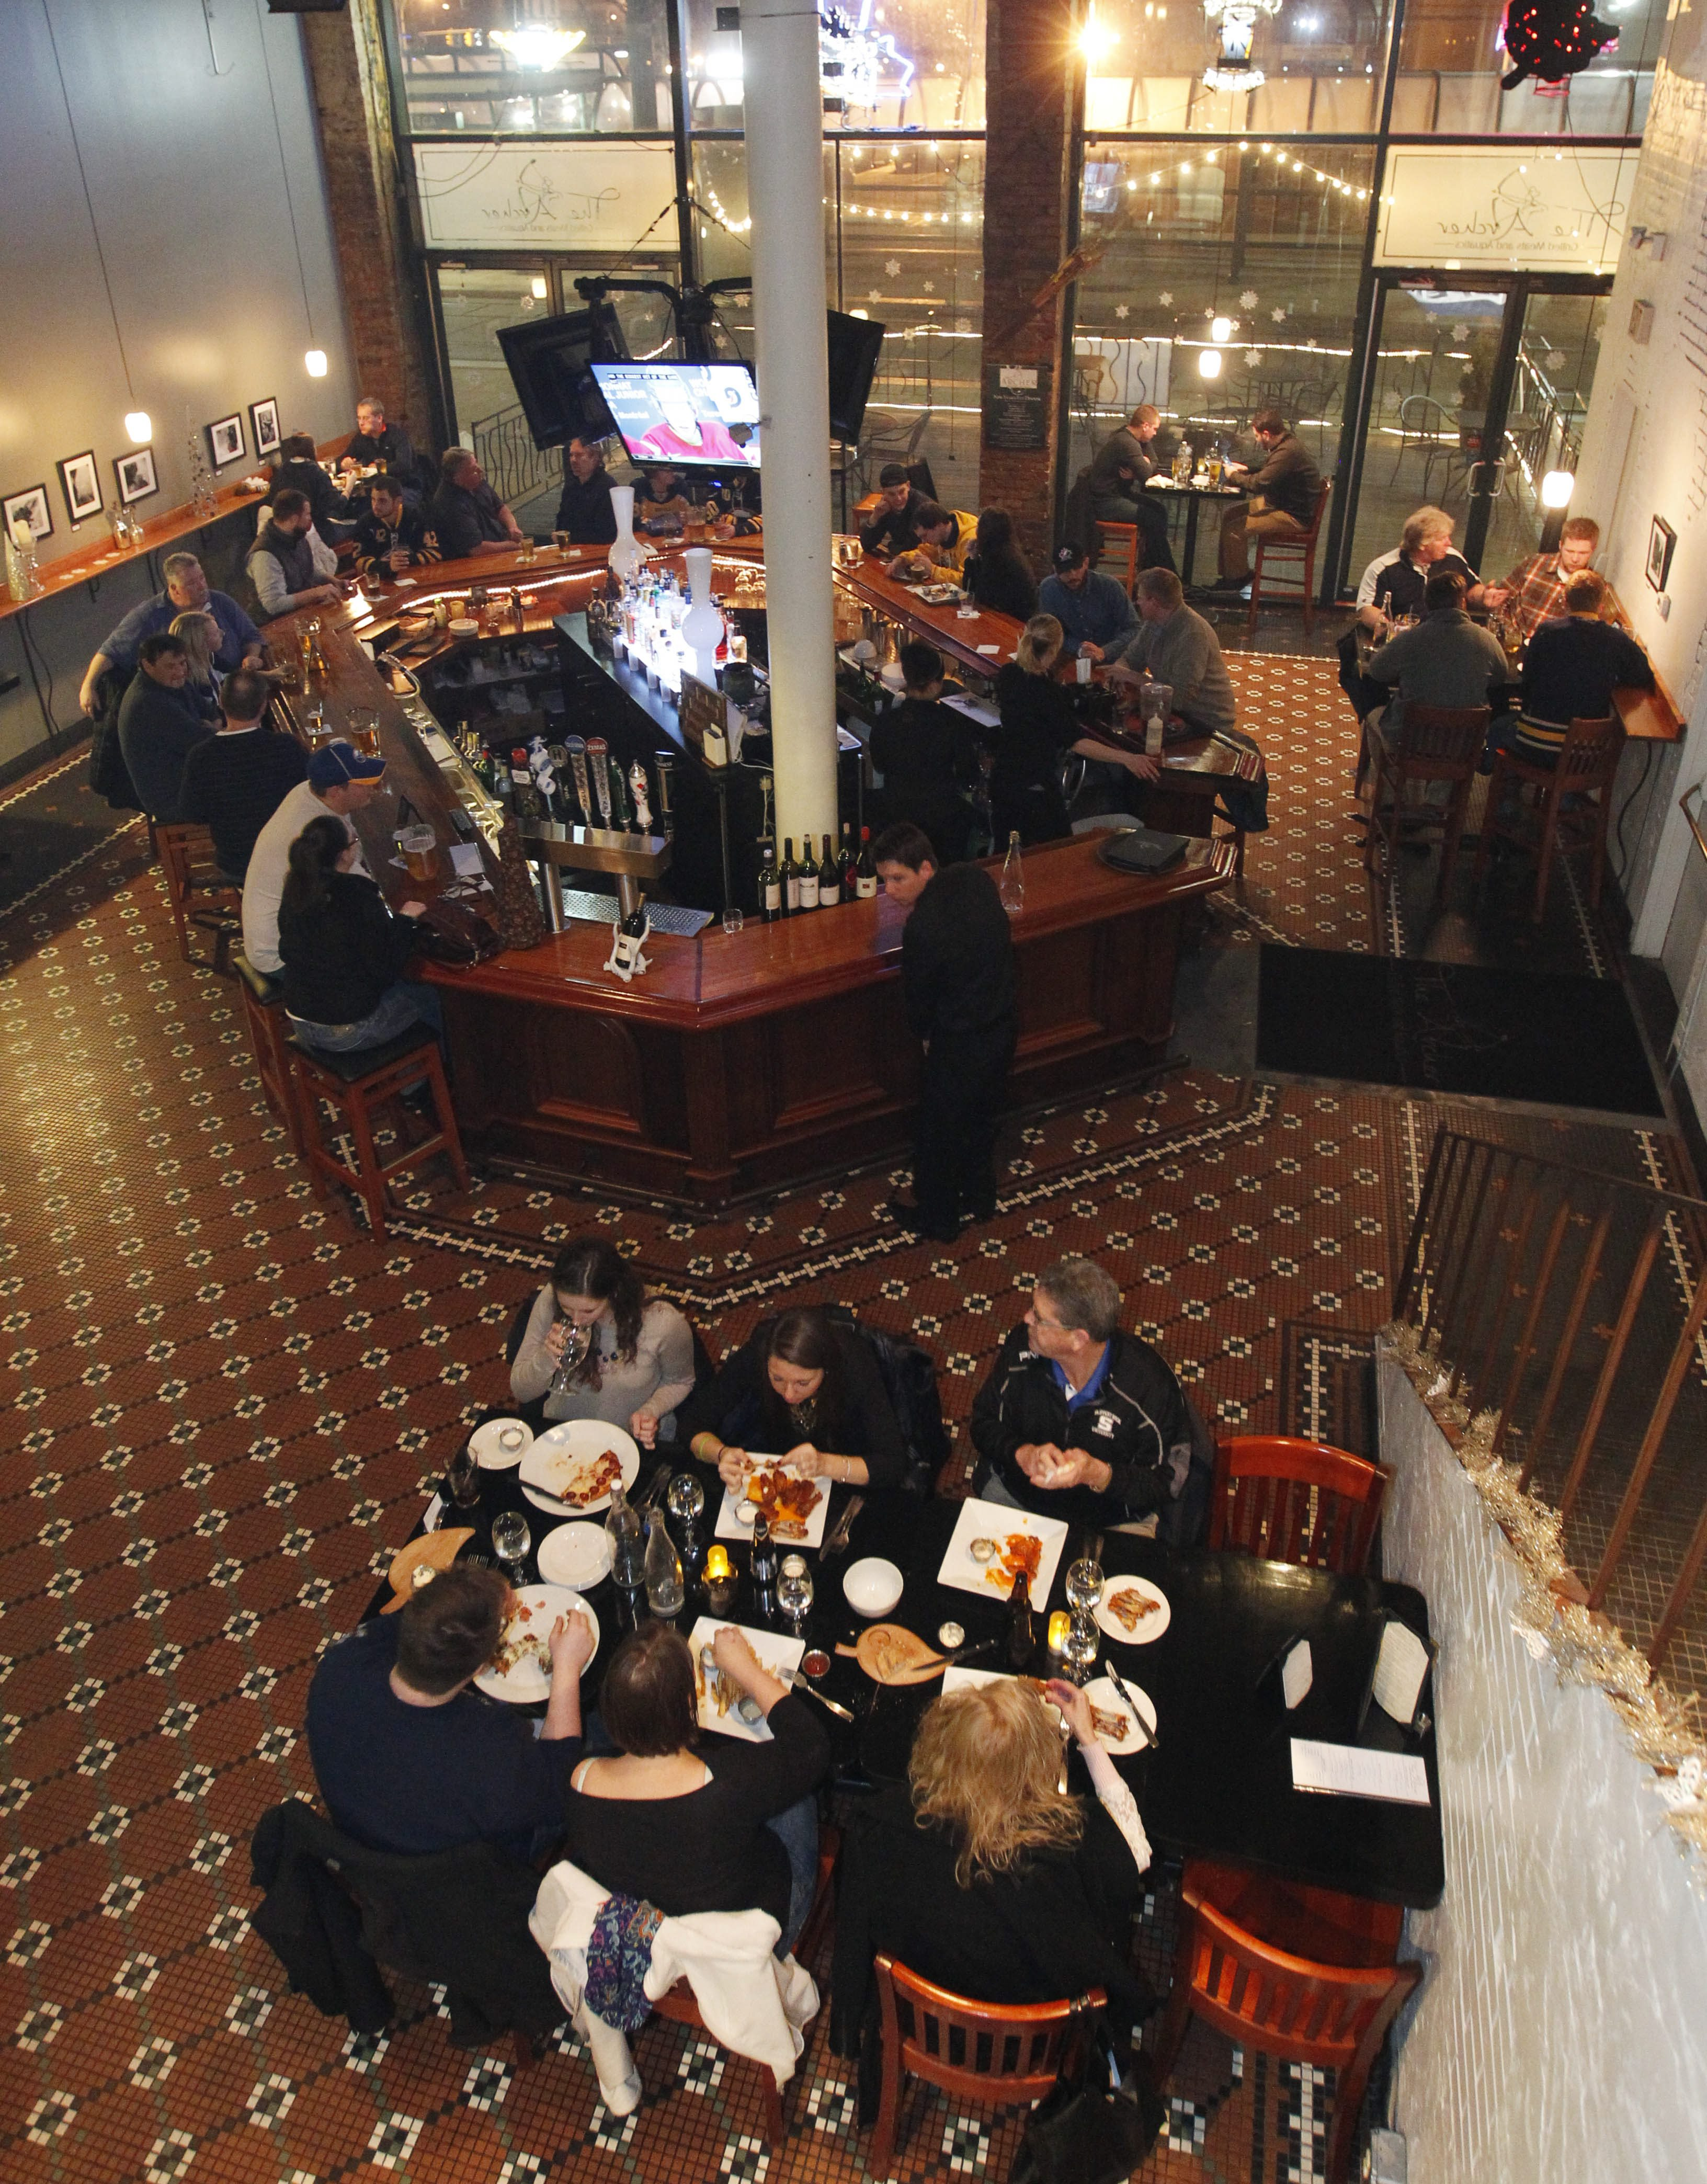 Customers hang out at the Archer, located on Main Street within walking distance of First Niagara Center, HarborCenter, Canalside and other downtown attractions.